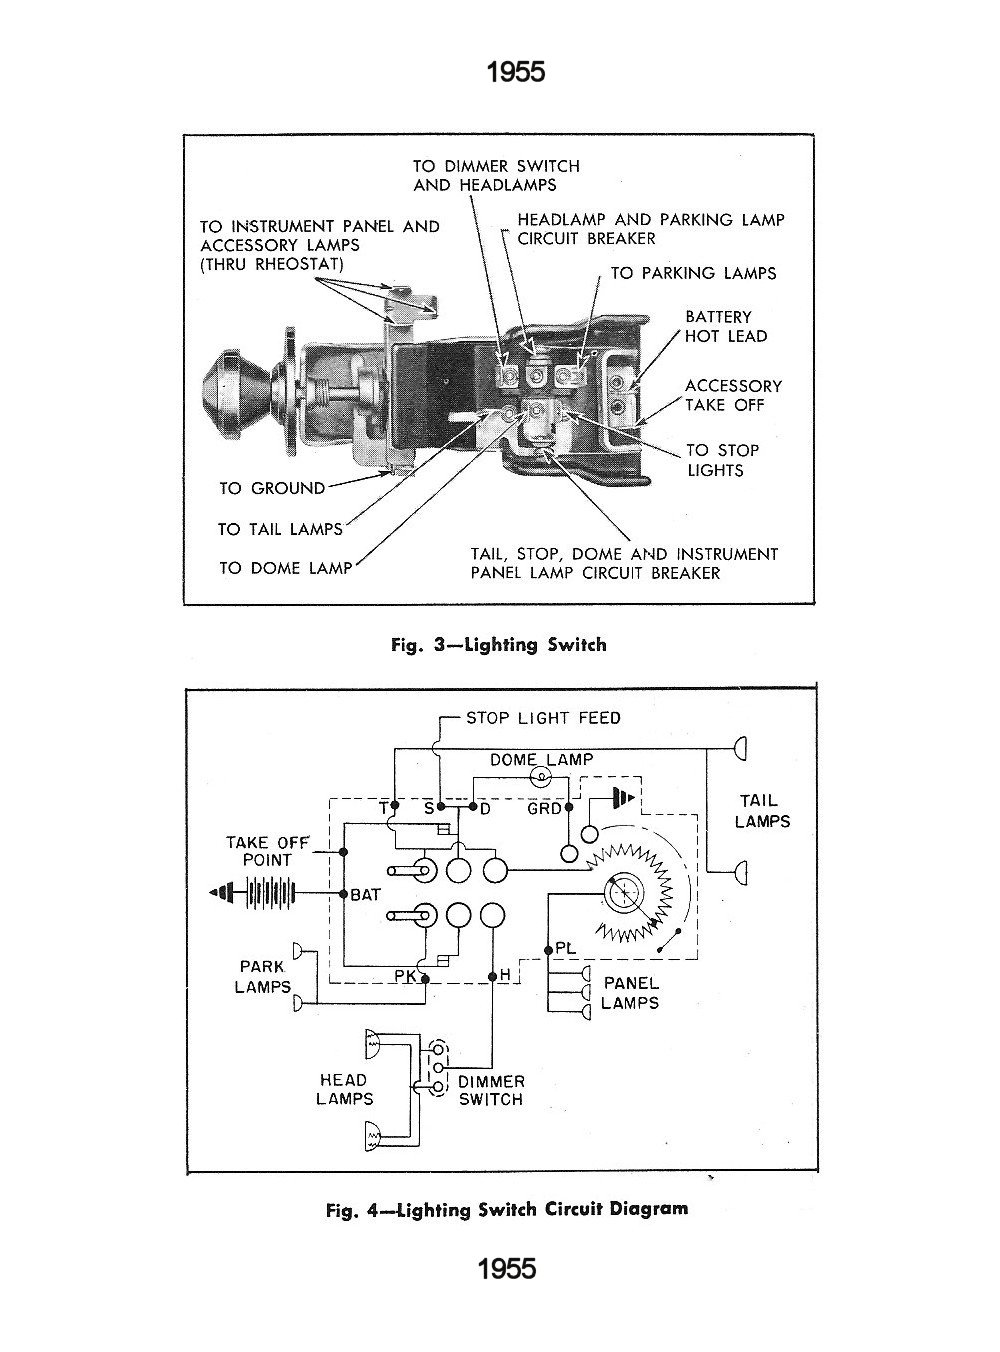 hight resolution of 63 chevy truck headlight switch wiring free download wiring diagram rh 43 perueckenstudio24 de painless wiring diagram headlight switch mymopar wiring